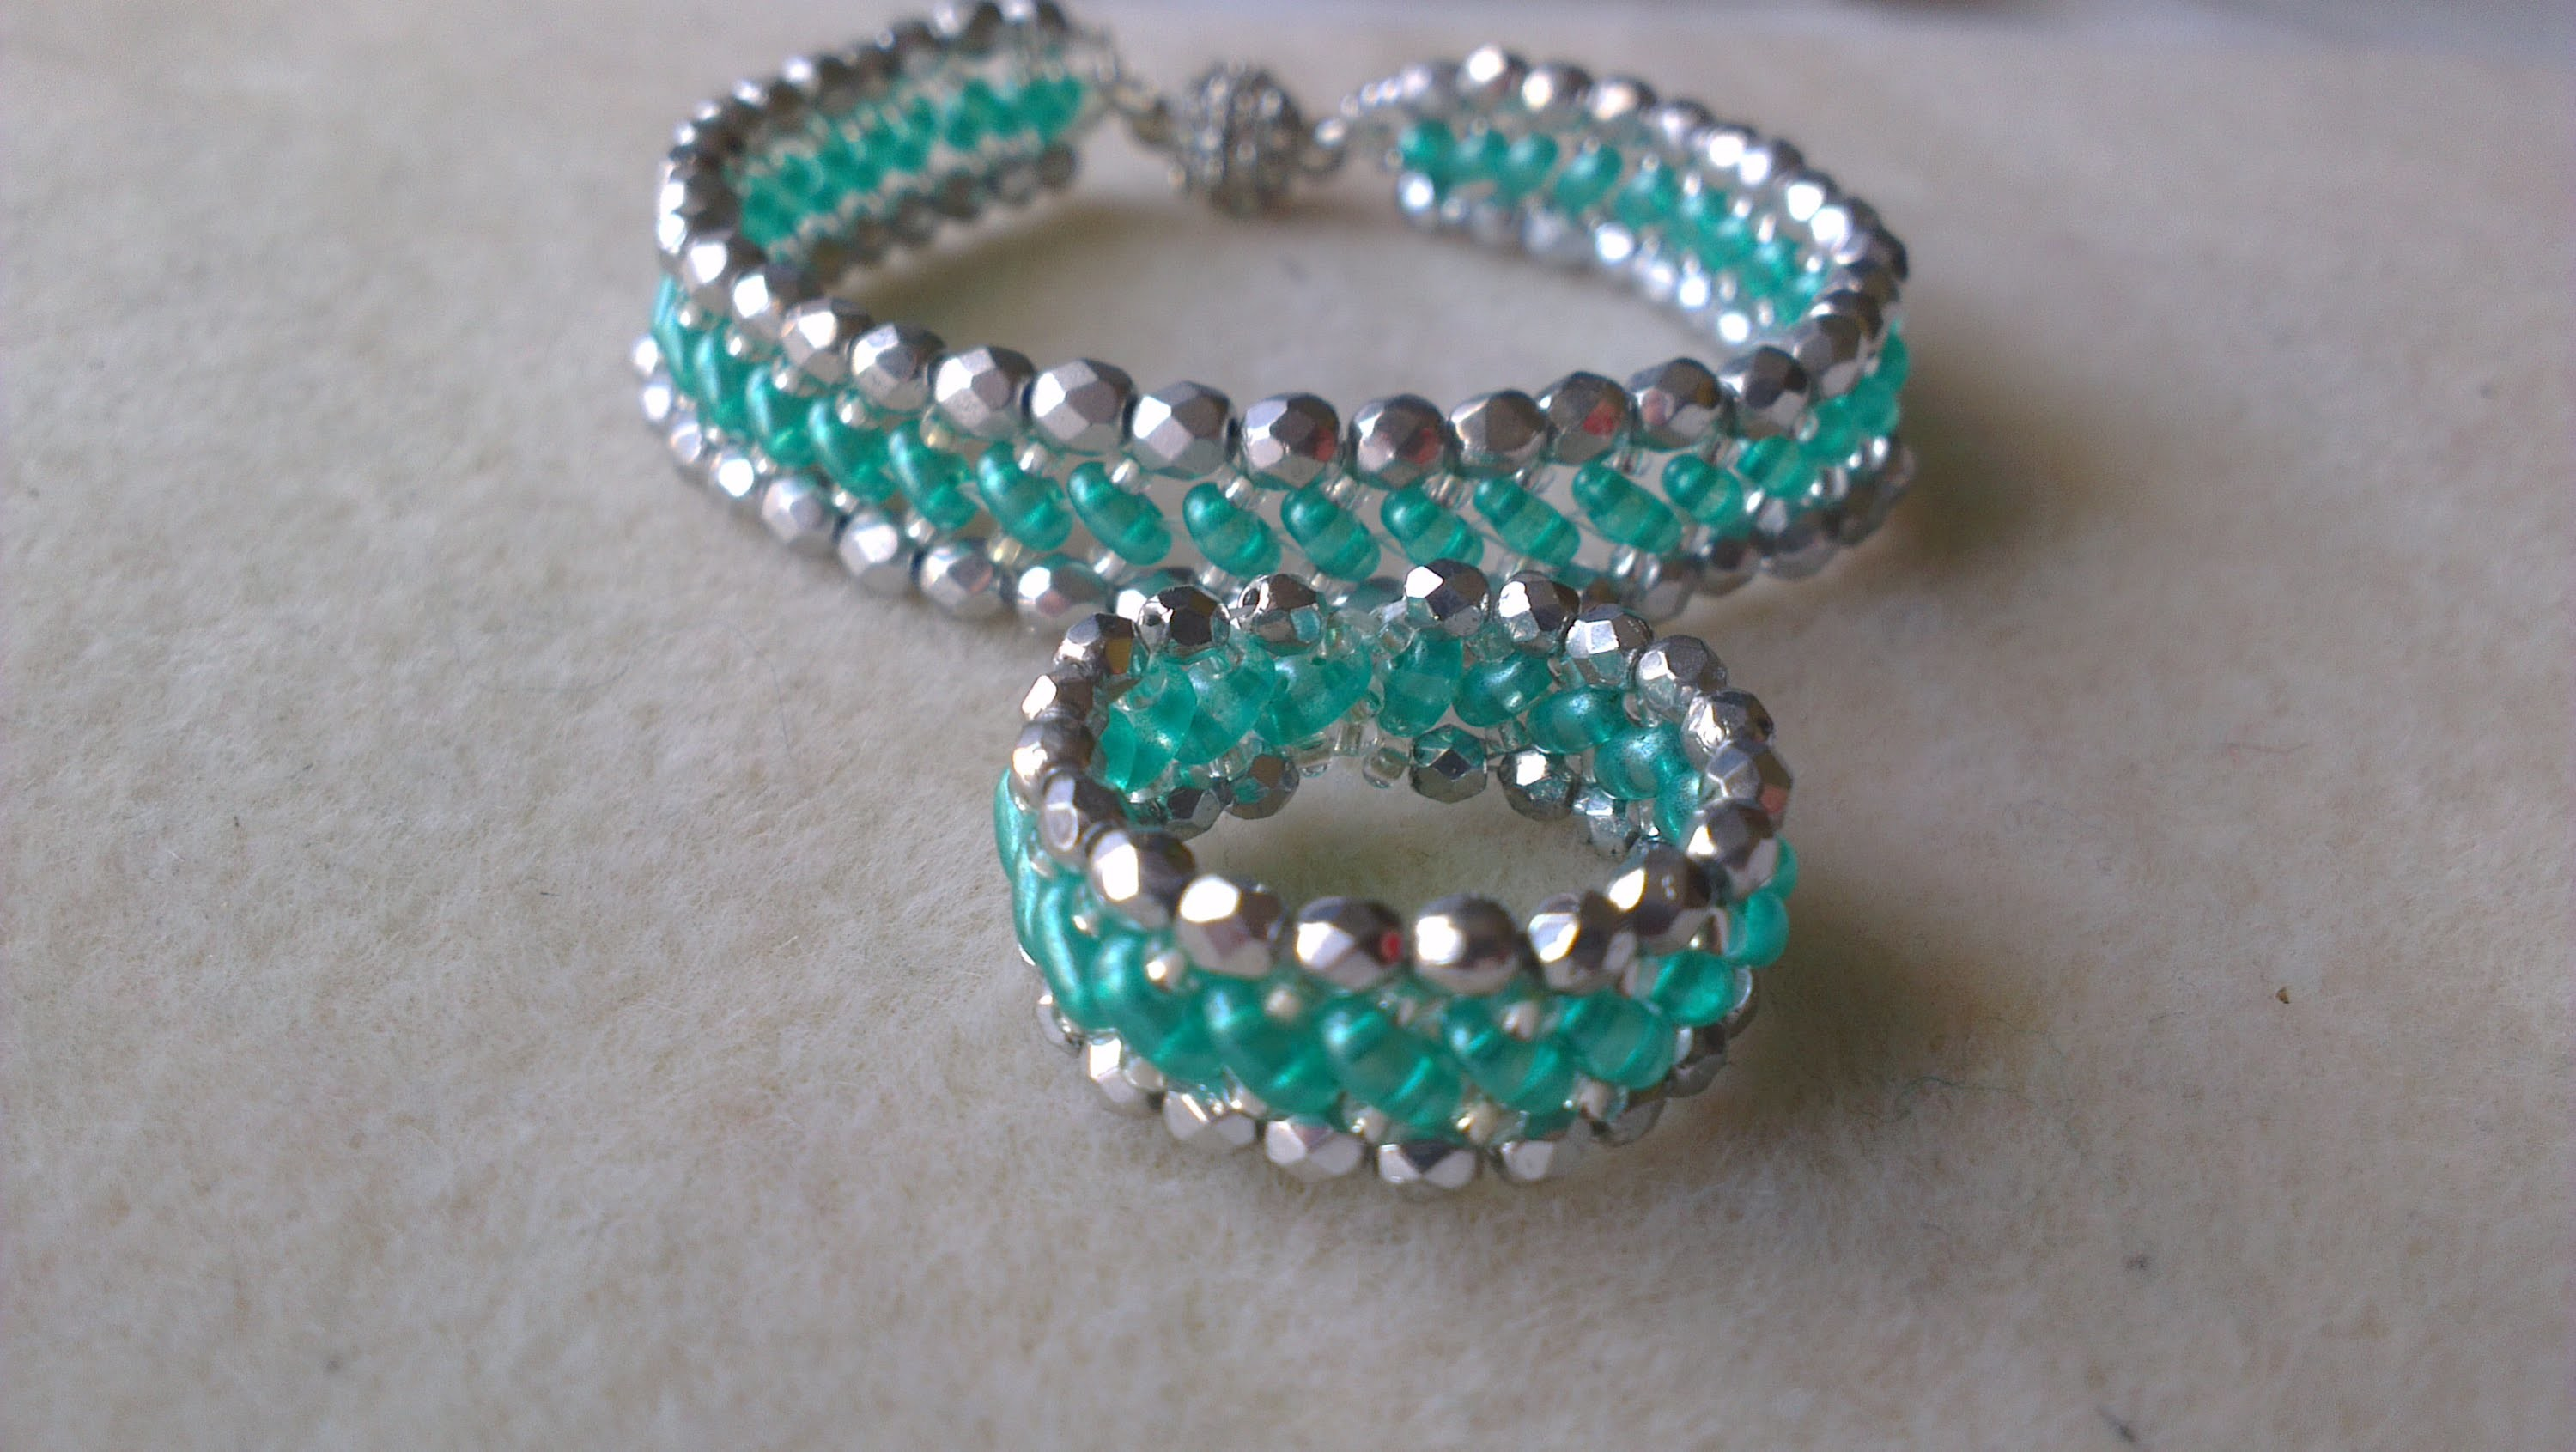 PULSERA Y ANILLO VERDE Y PLATA-BRACELET AND RING LIGHT EMERALD AND SILVER COLOR.